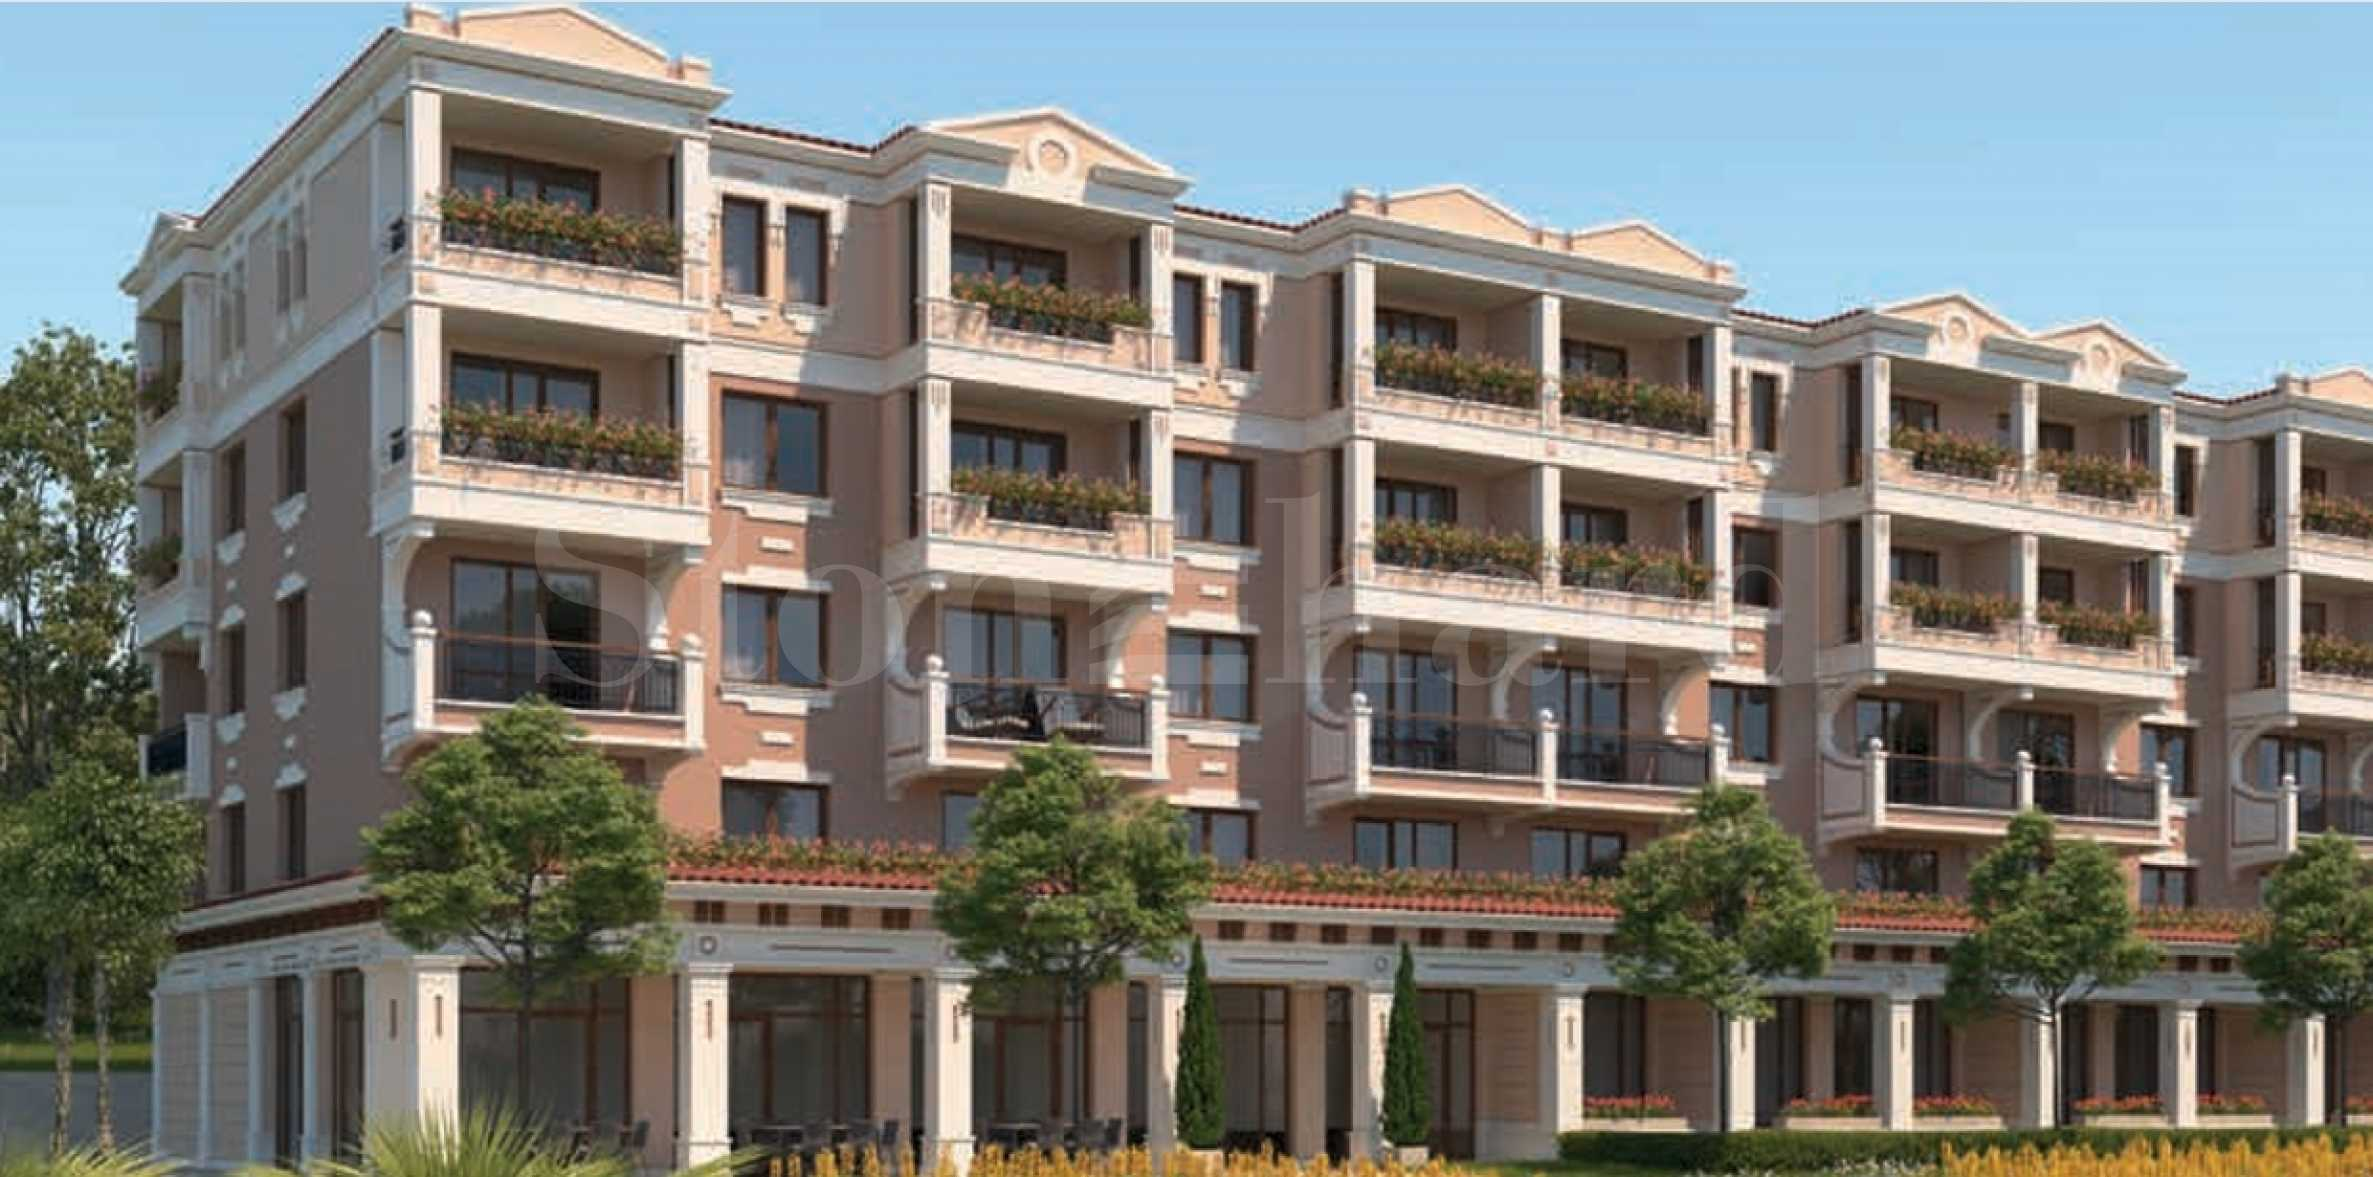 Premium apartments in a waterfront complex at attractive prices2 - Stonehard